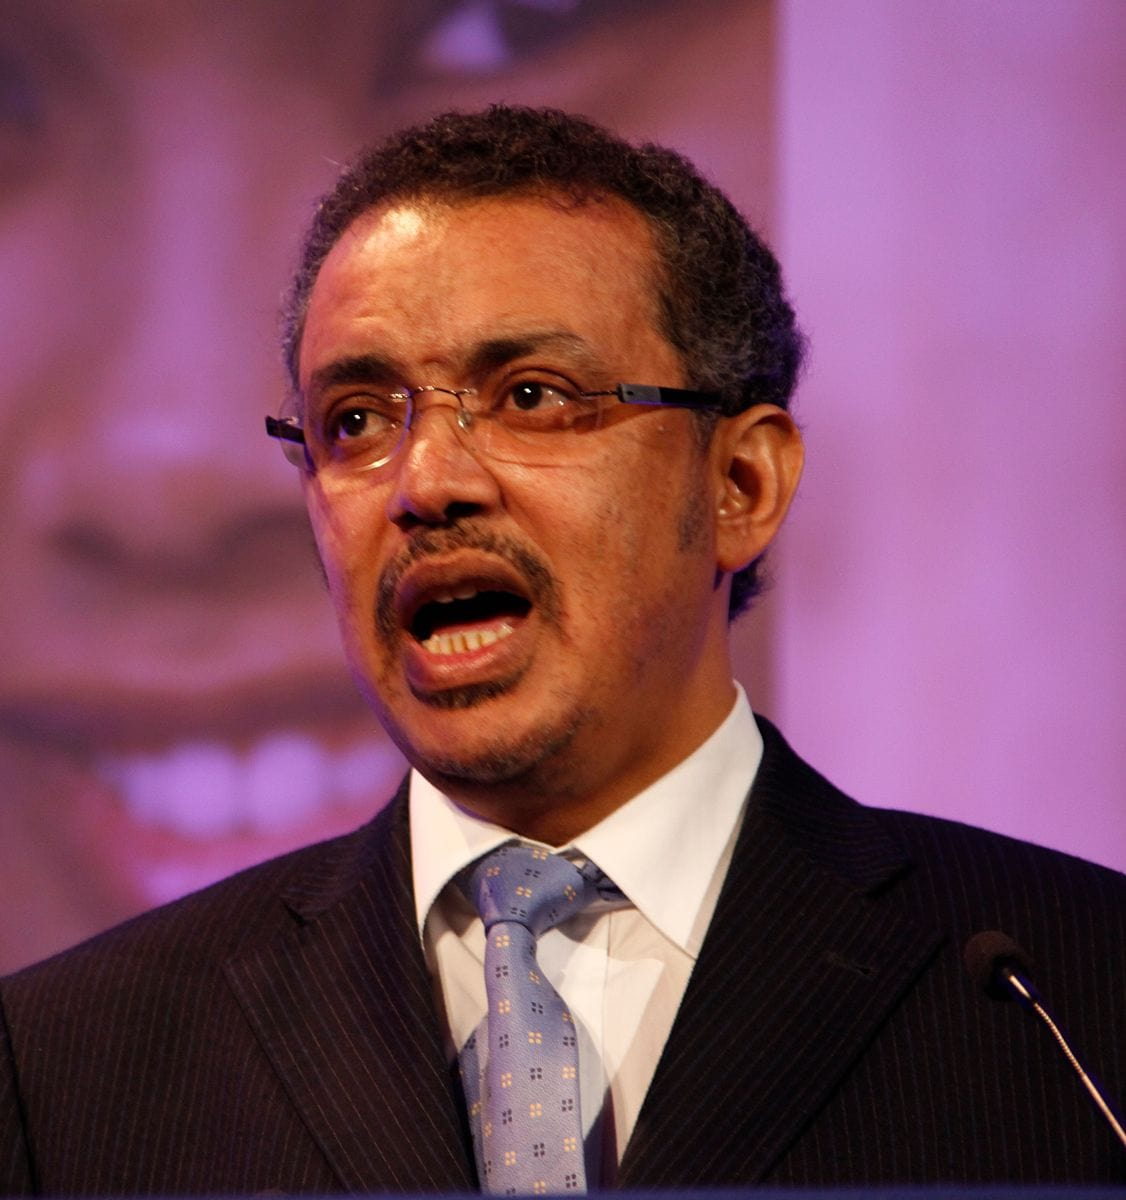 Dr. Tedros Adhanom Ghebreyesus, Minister of Health, Ethiopia, speaking at the London Summit on Family Planning